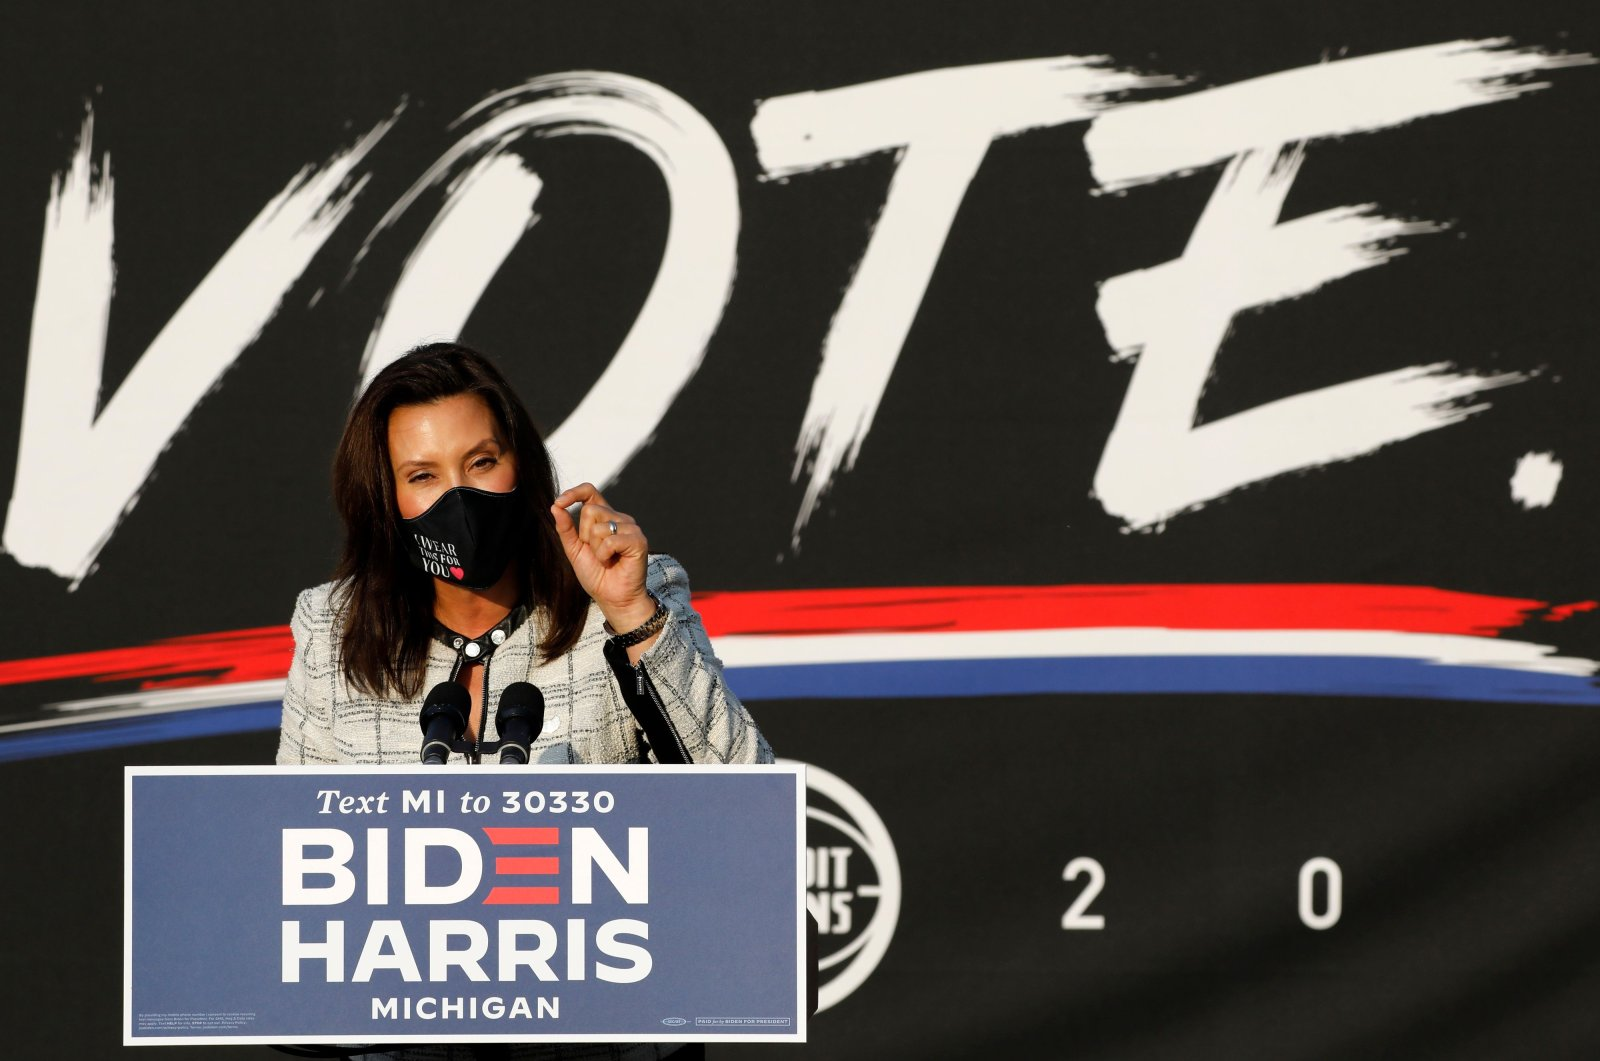 Michigan Gov. Gretchen Whitmer speaks before Democratic vice presidential nominee Kamala Harris at the Detroit Pistons Practice Facility in Detroit, Michigan, U.S., Sept. 22, 2020. (AFP Photo)